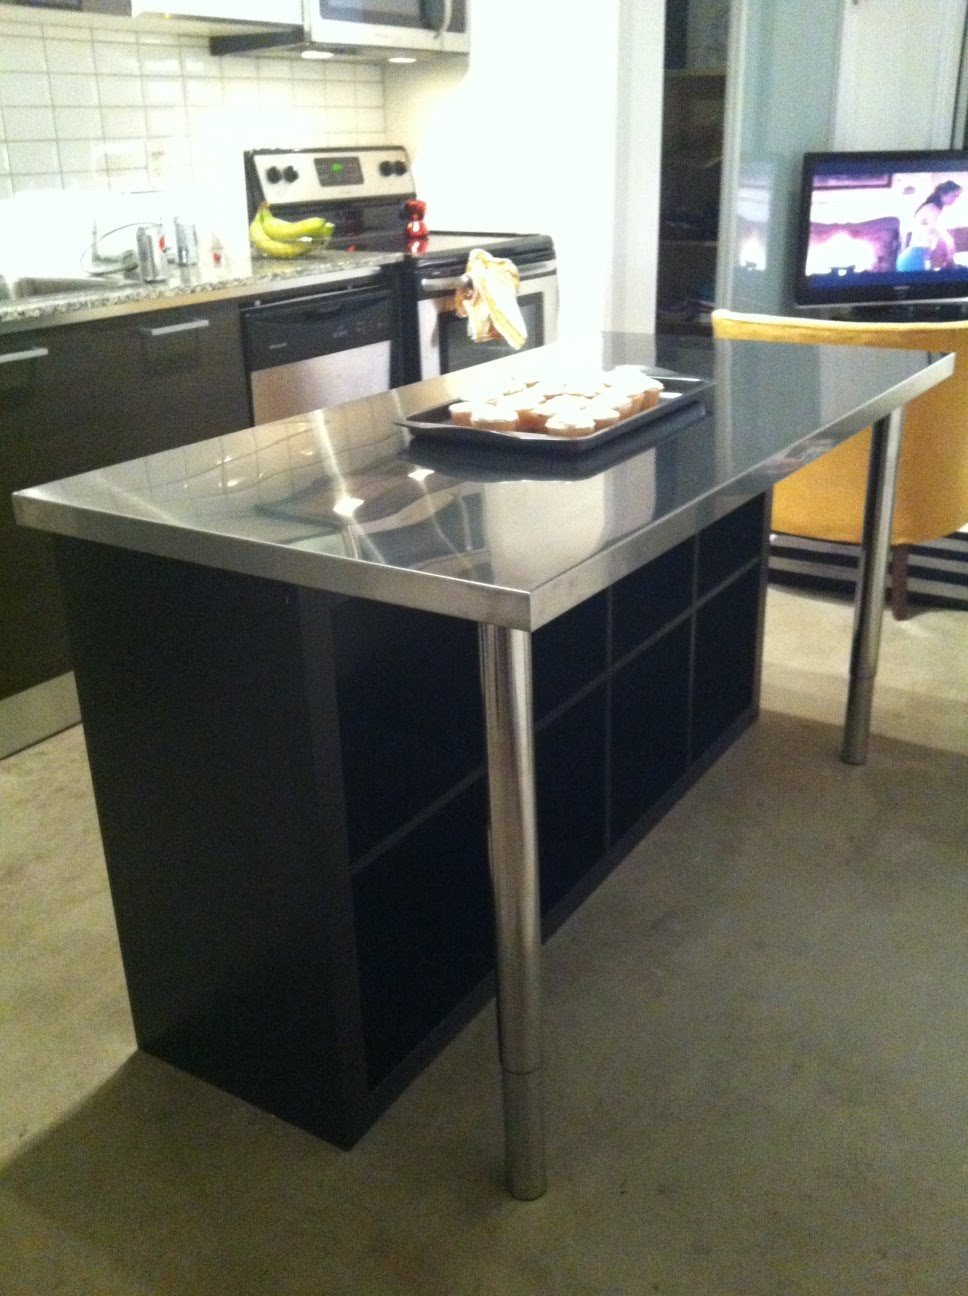 Ikea Kitchen Islands At Home And Interior Design Ideas # Meuble Bar Ikea